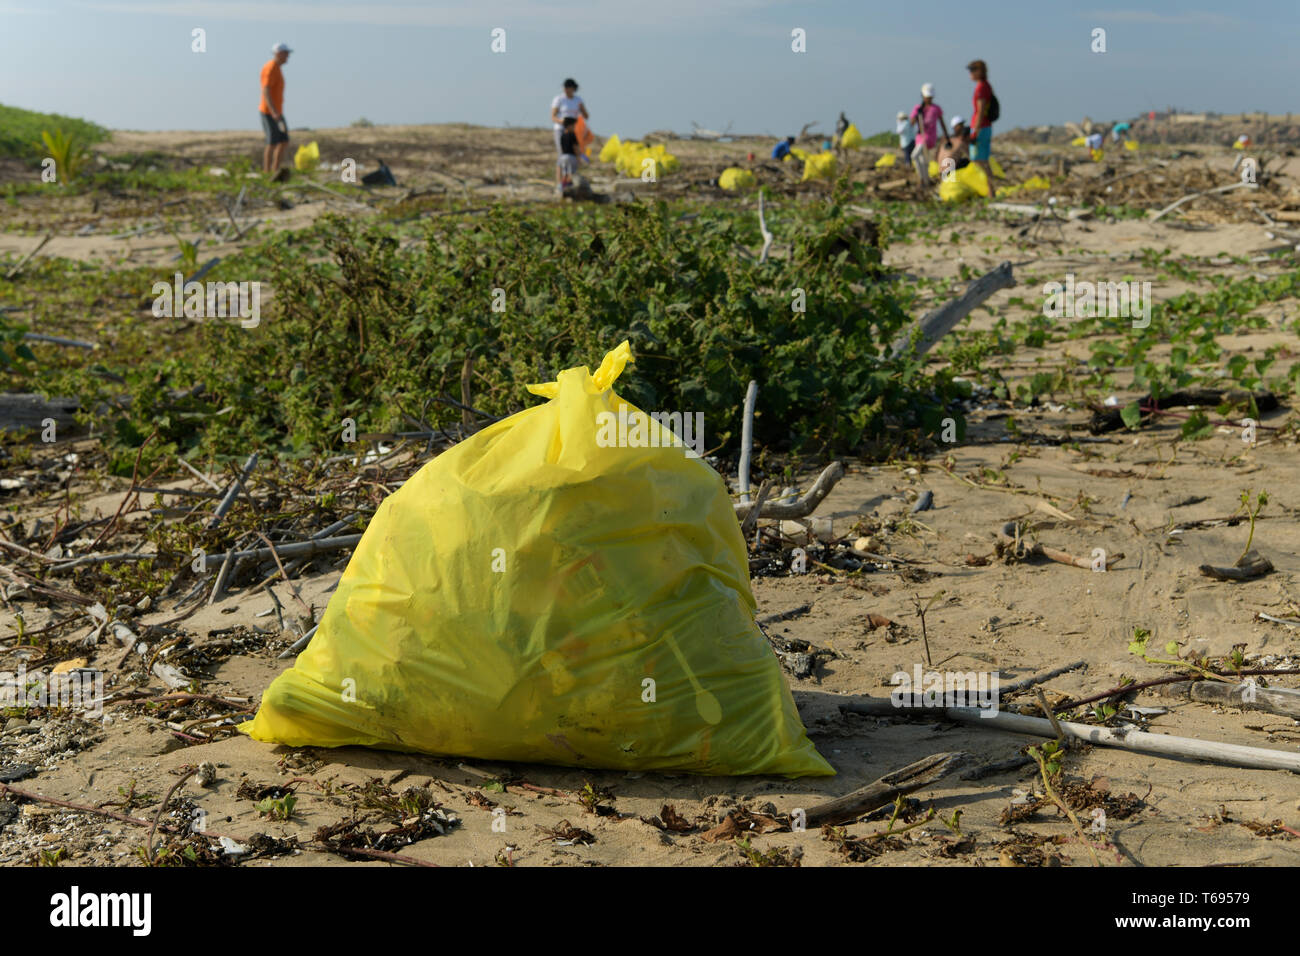 Durban, KwaZulu-Natal, South Africa, yellow bag full of plastic pollution collected by citizen volunteers, beach cleaning, landscape, people - Stock Image